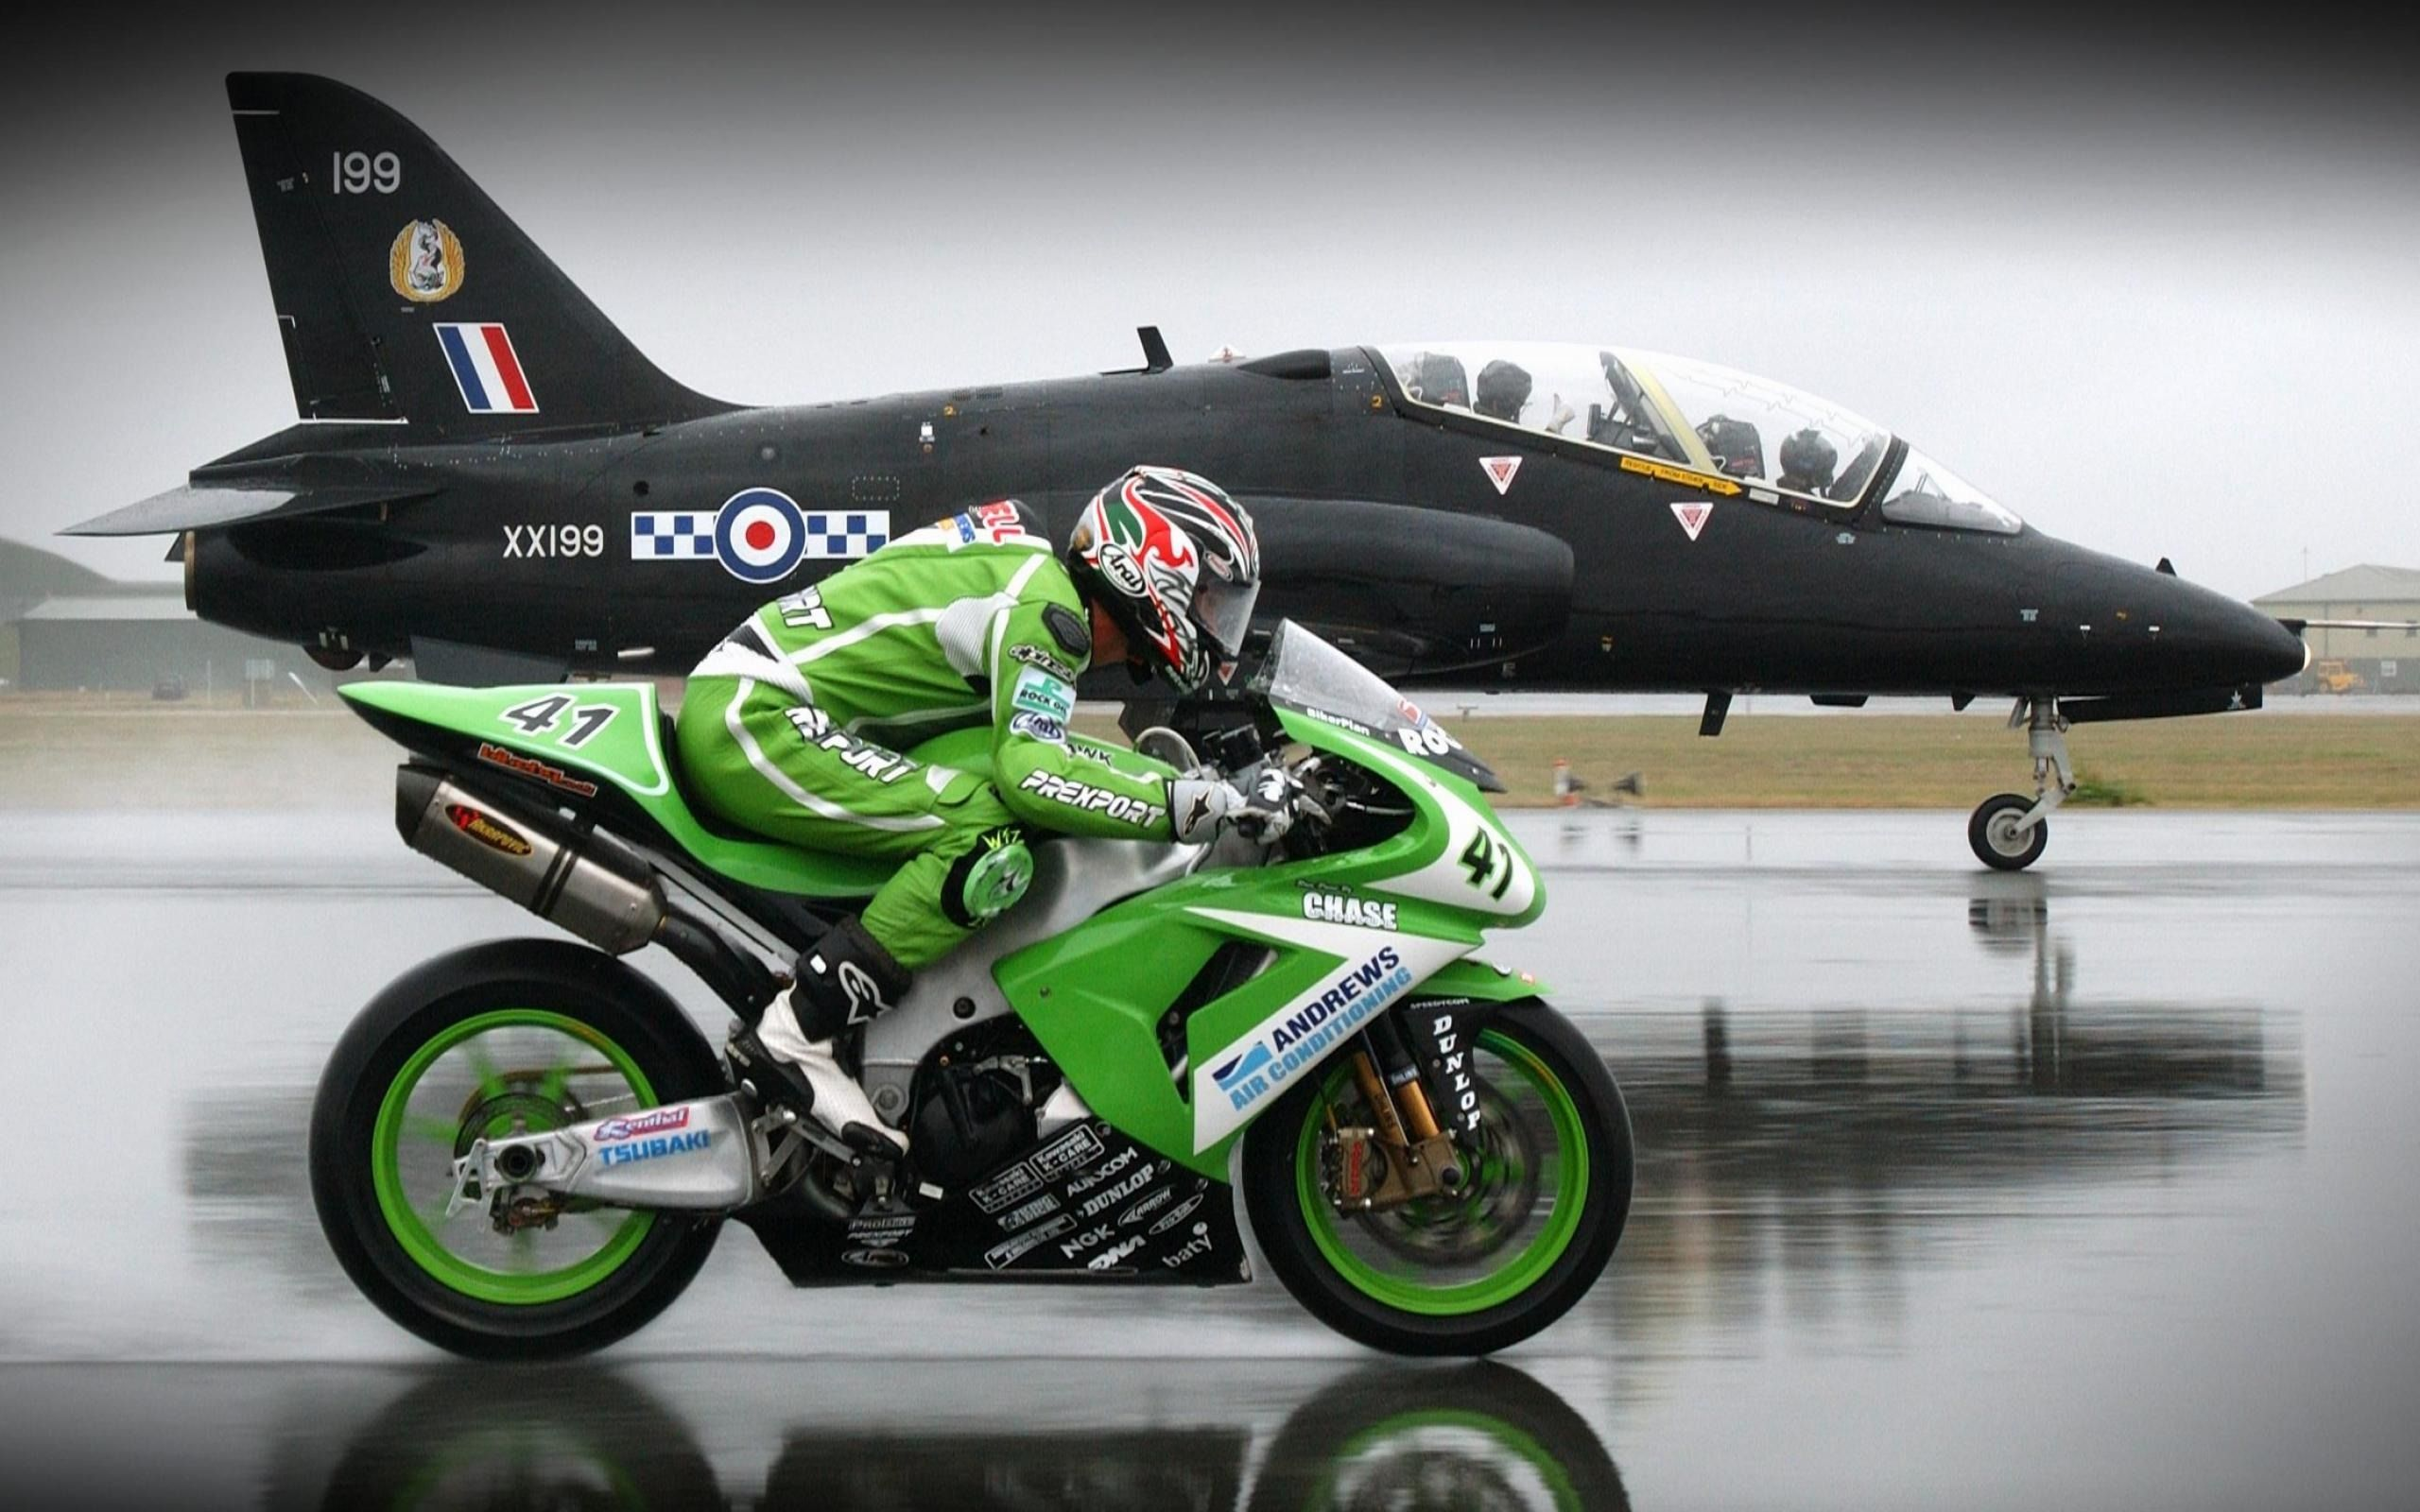 Superbike Vs Jet One Day Must Have Racing Bikes Super